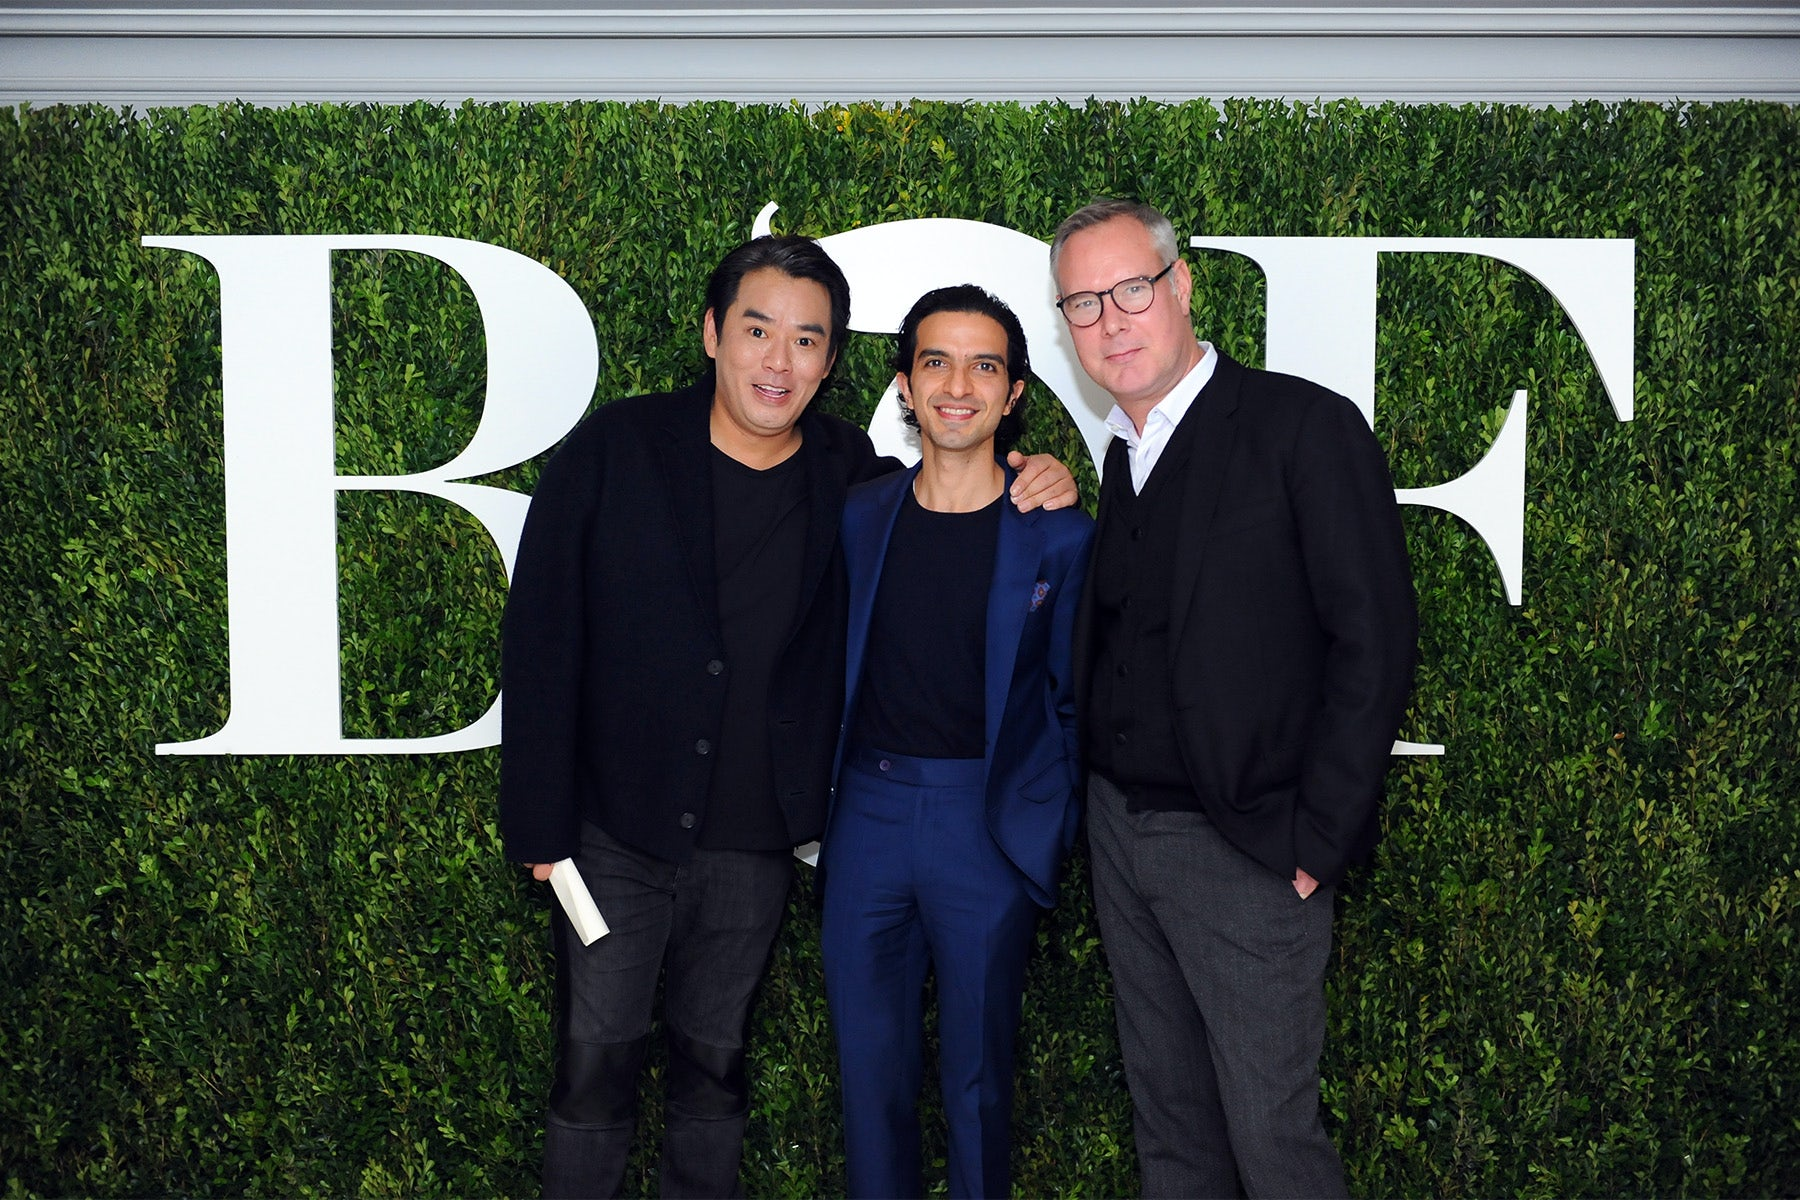 Melvin Chua, Imran Amed and Andrew Keith | Source: BoF